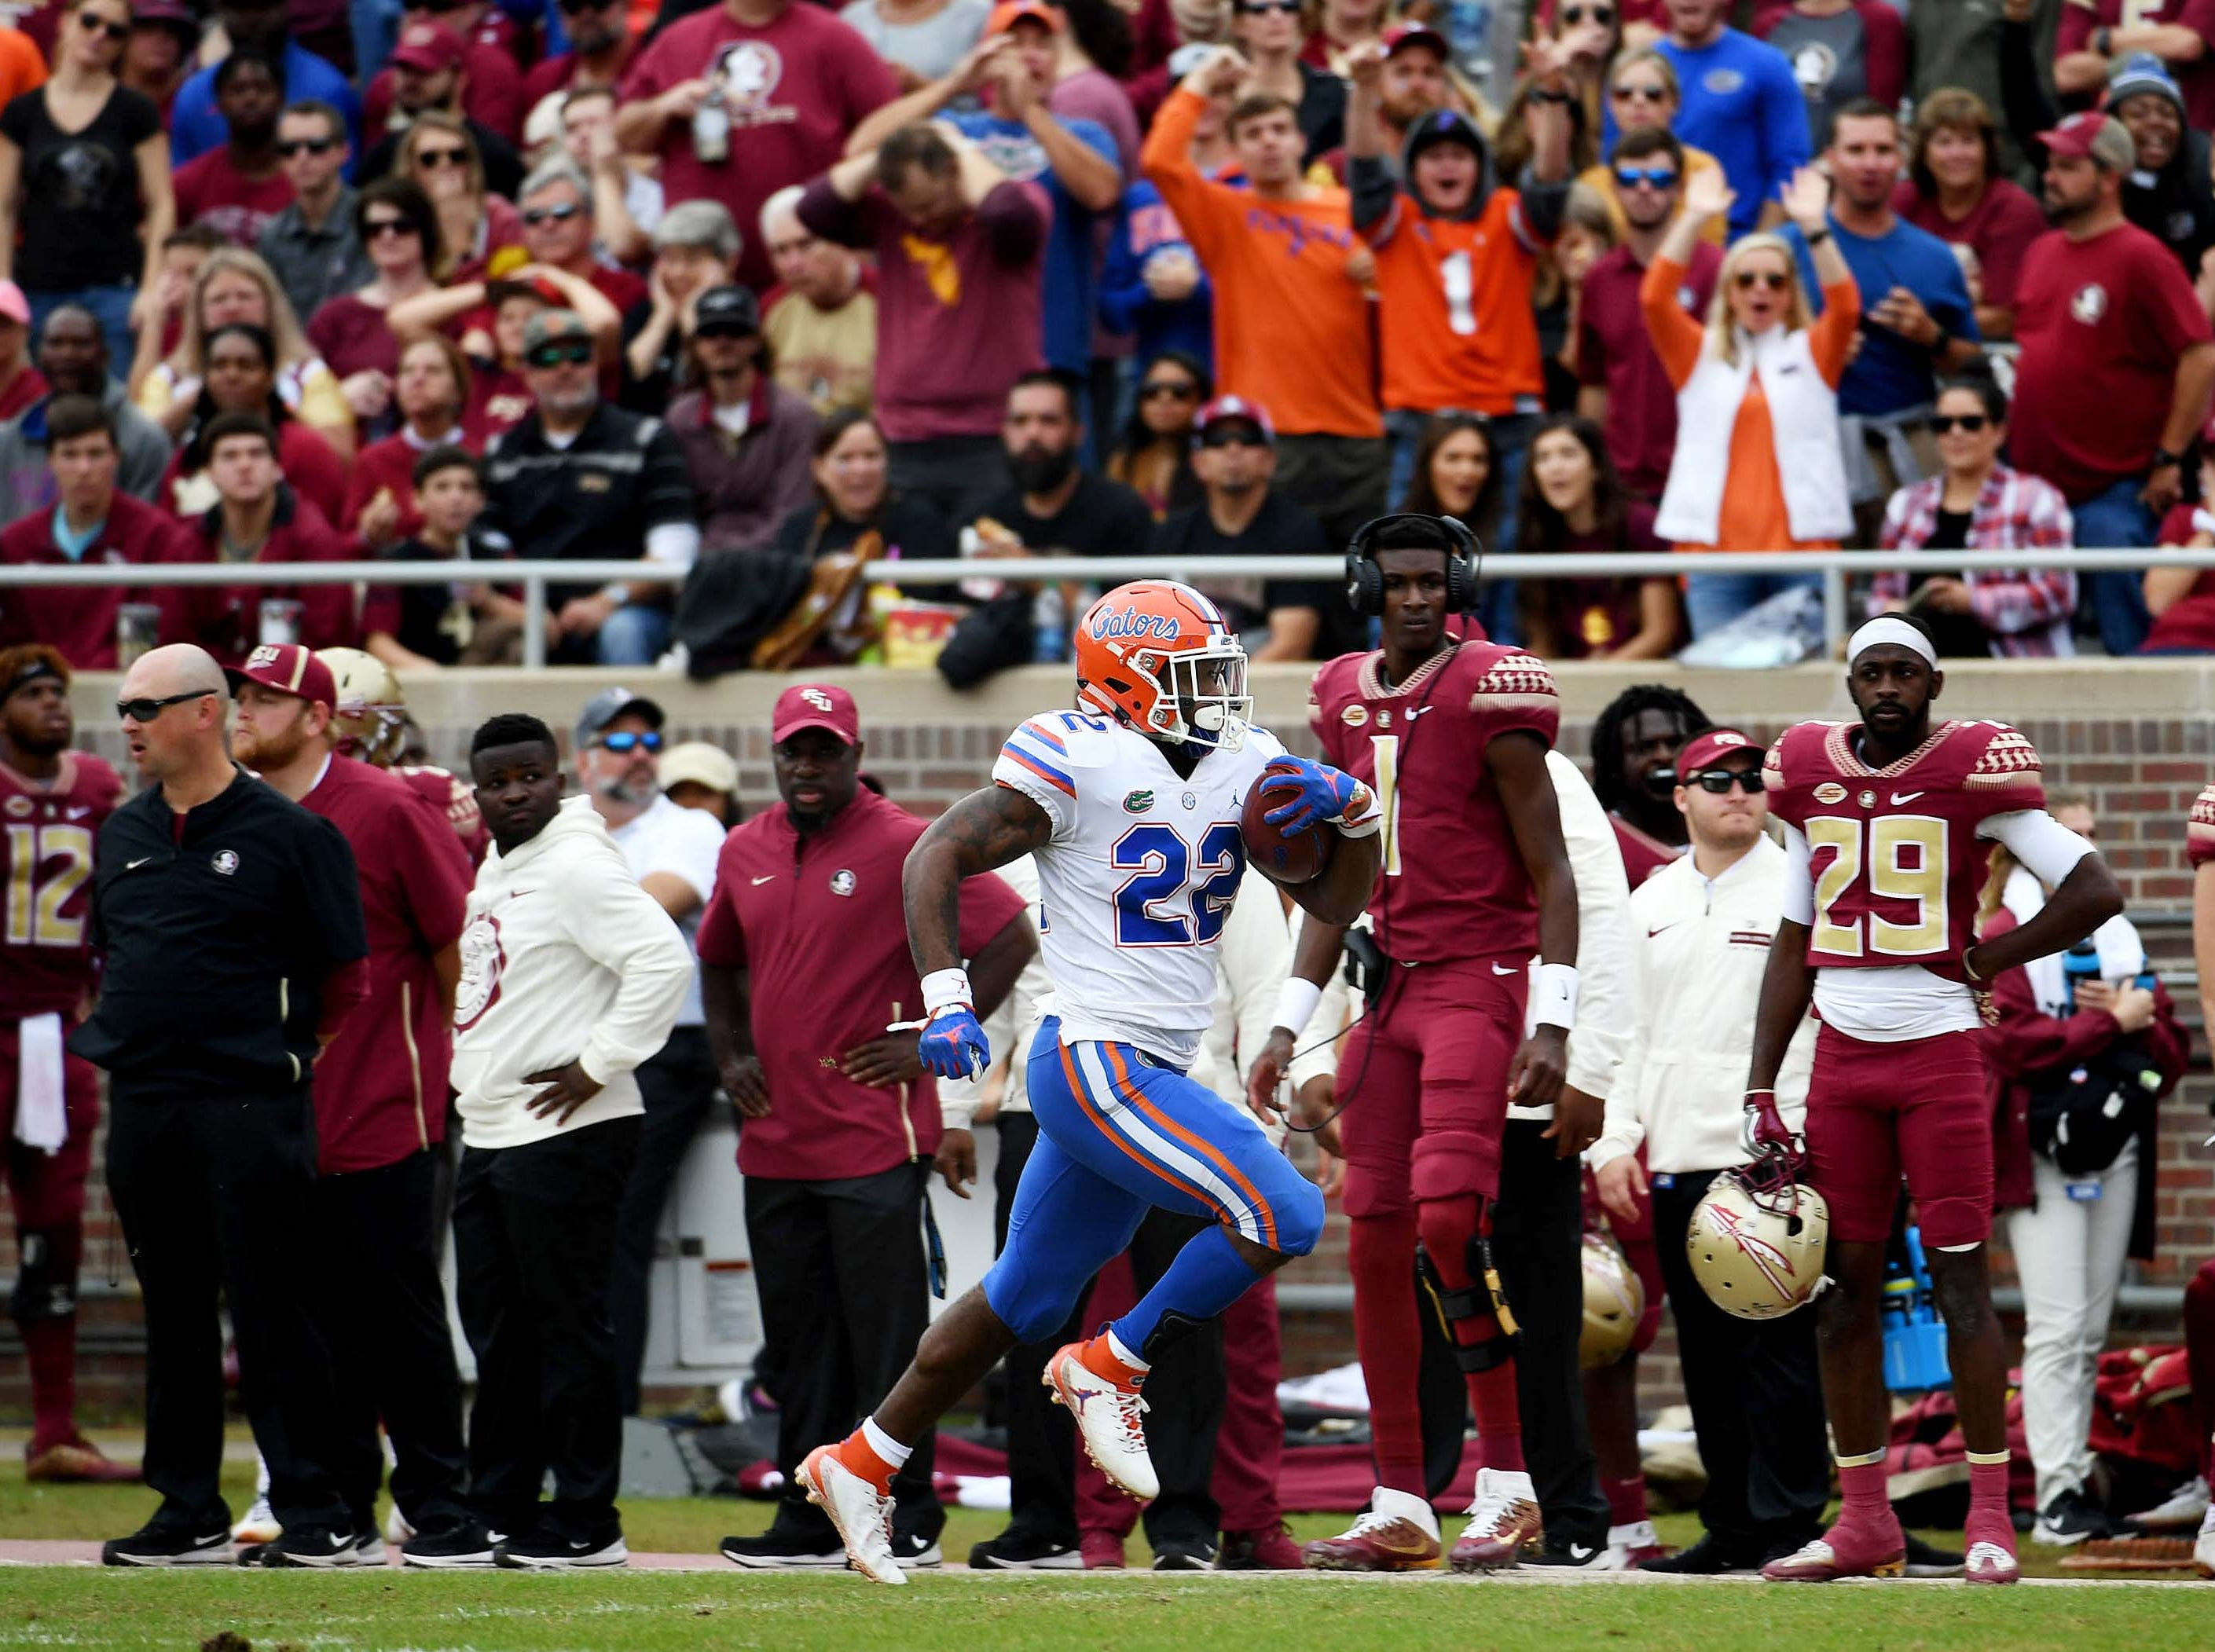 Nov 24, 2018; Tallahassee, FL, USA; Florida Gators running back Lamical Perine (22) runs the ball for a touchdown during the first half against the Florida State Seminoles at Doak Campbell Stadium. Mandatory Credit: Melina Myers-USA TODAY Sports